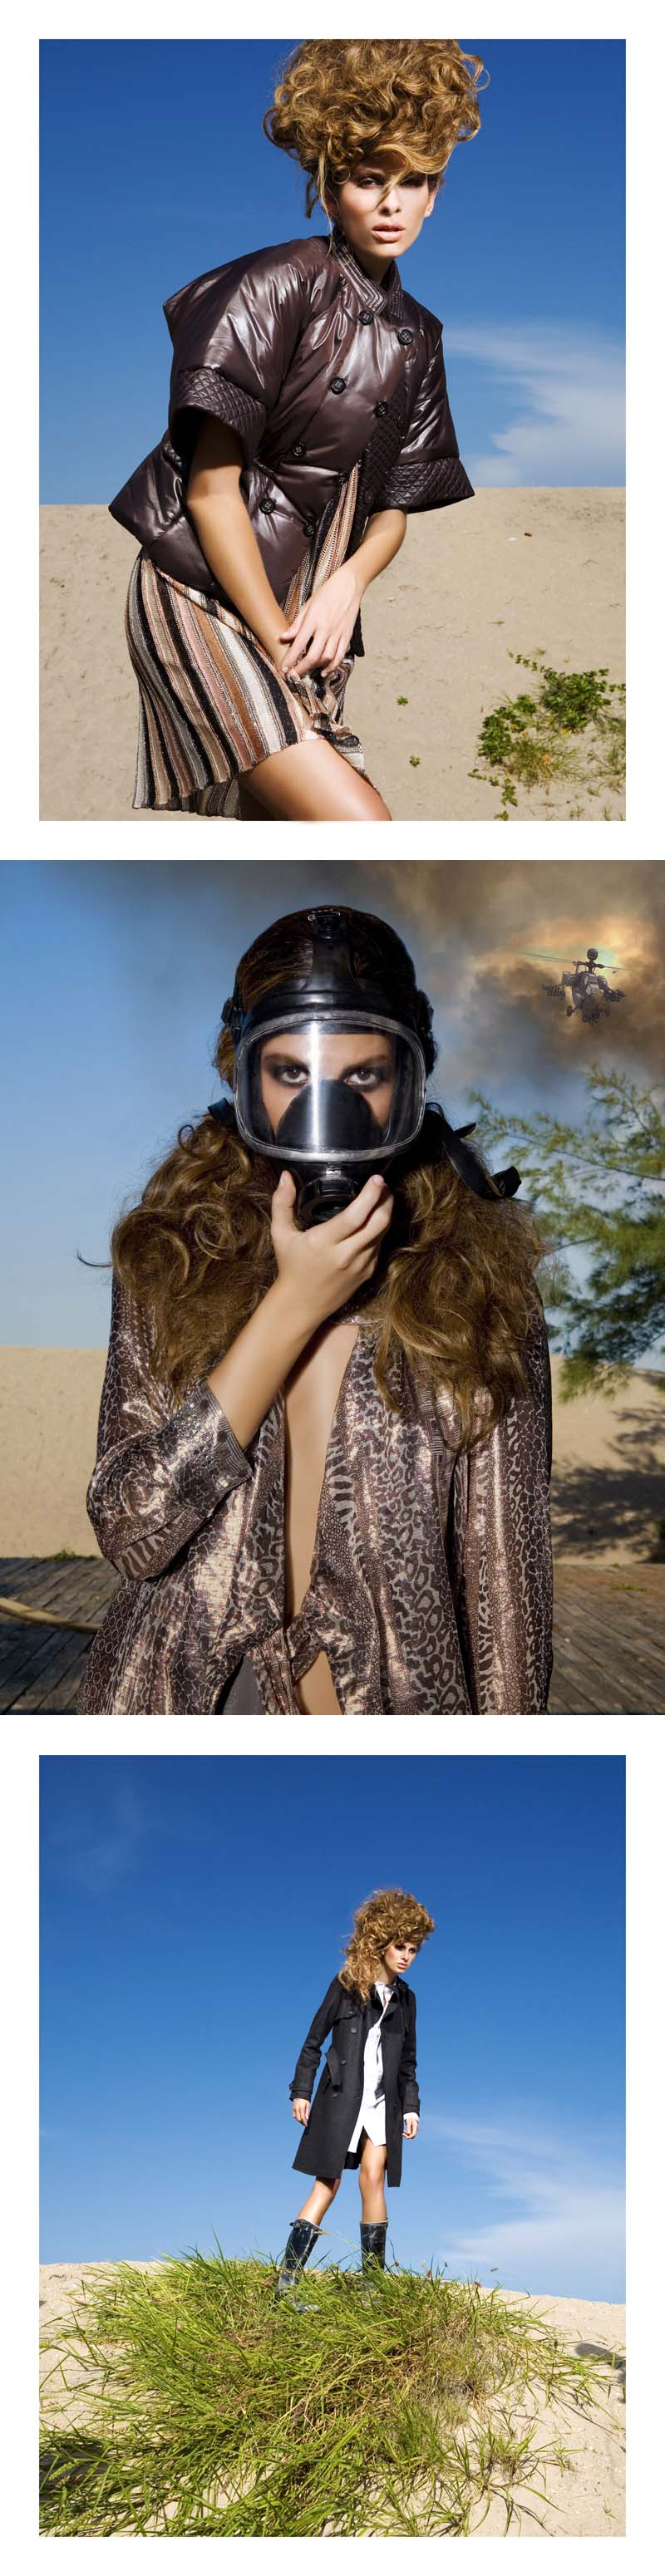 Male model photo shoot of Richard Cordero in My own nuclear hell